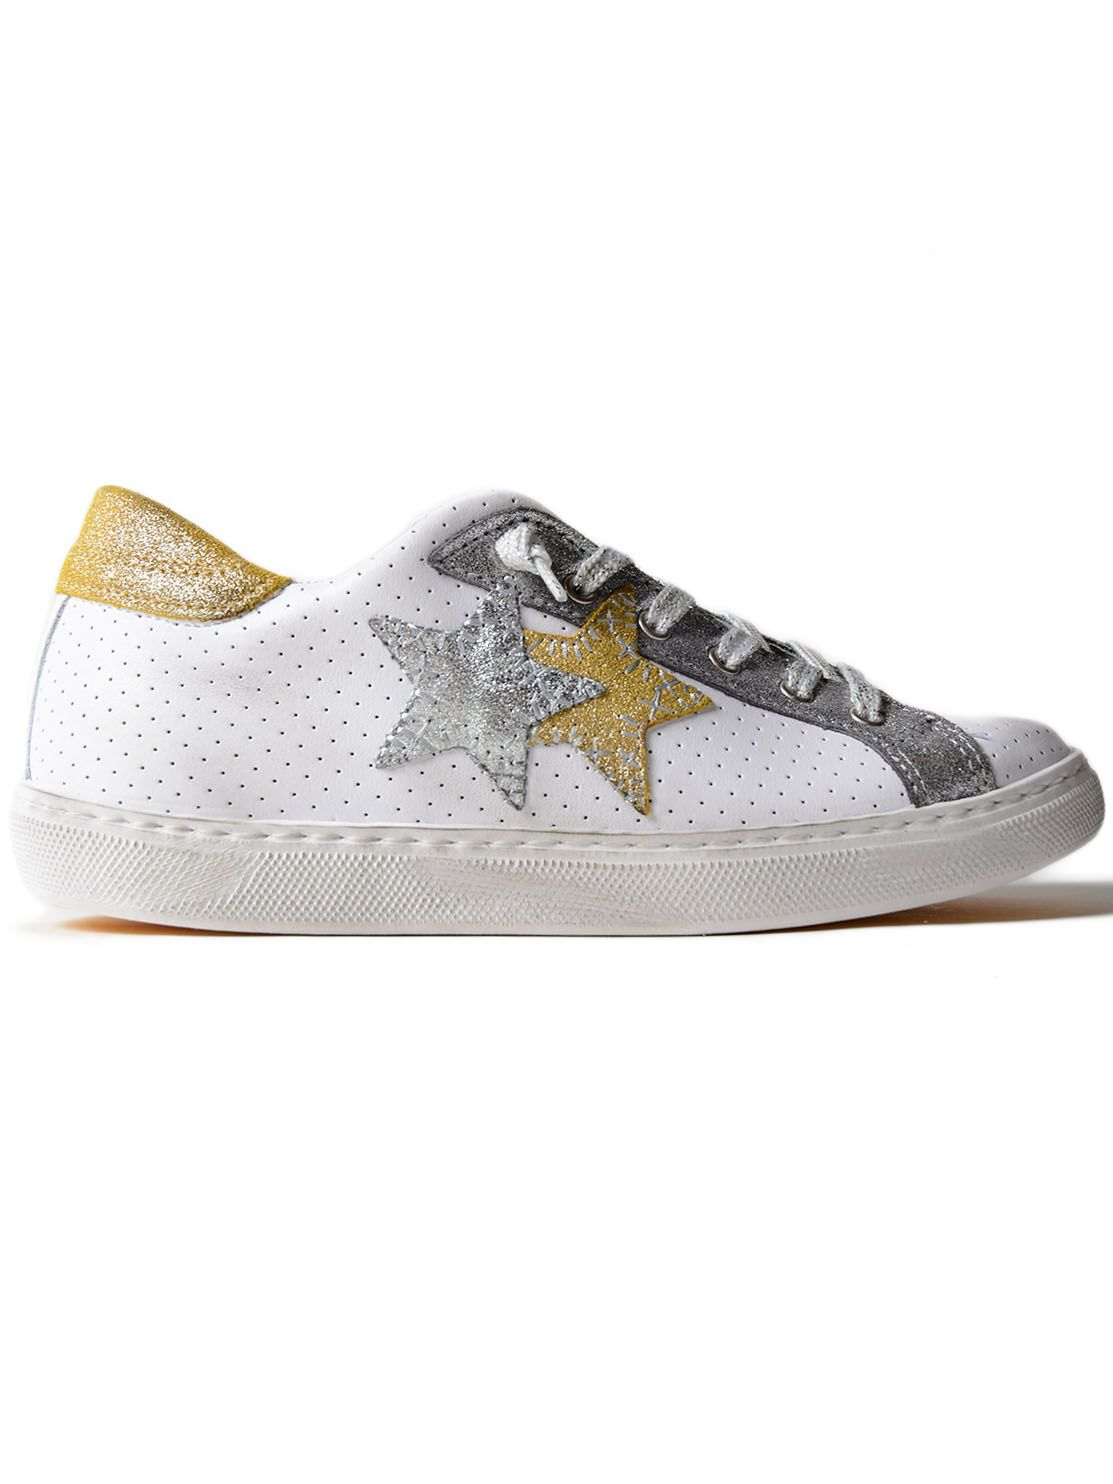 2STAR Sneaker Low in White/Silv/Gold